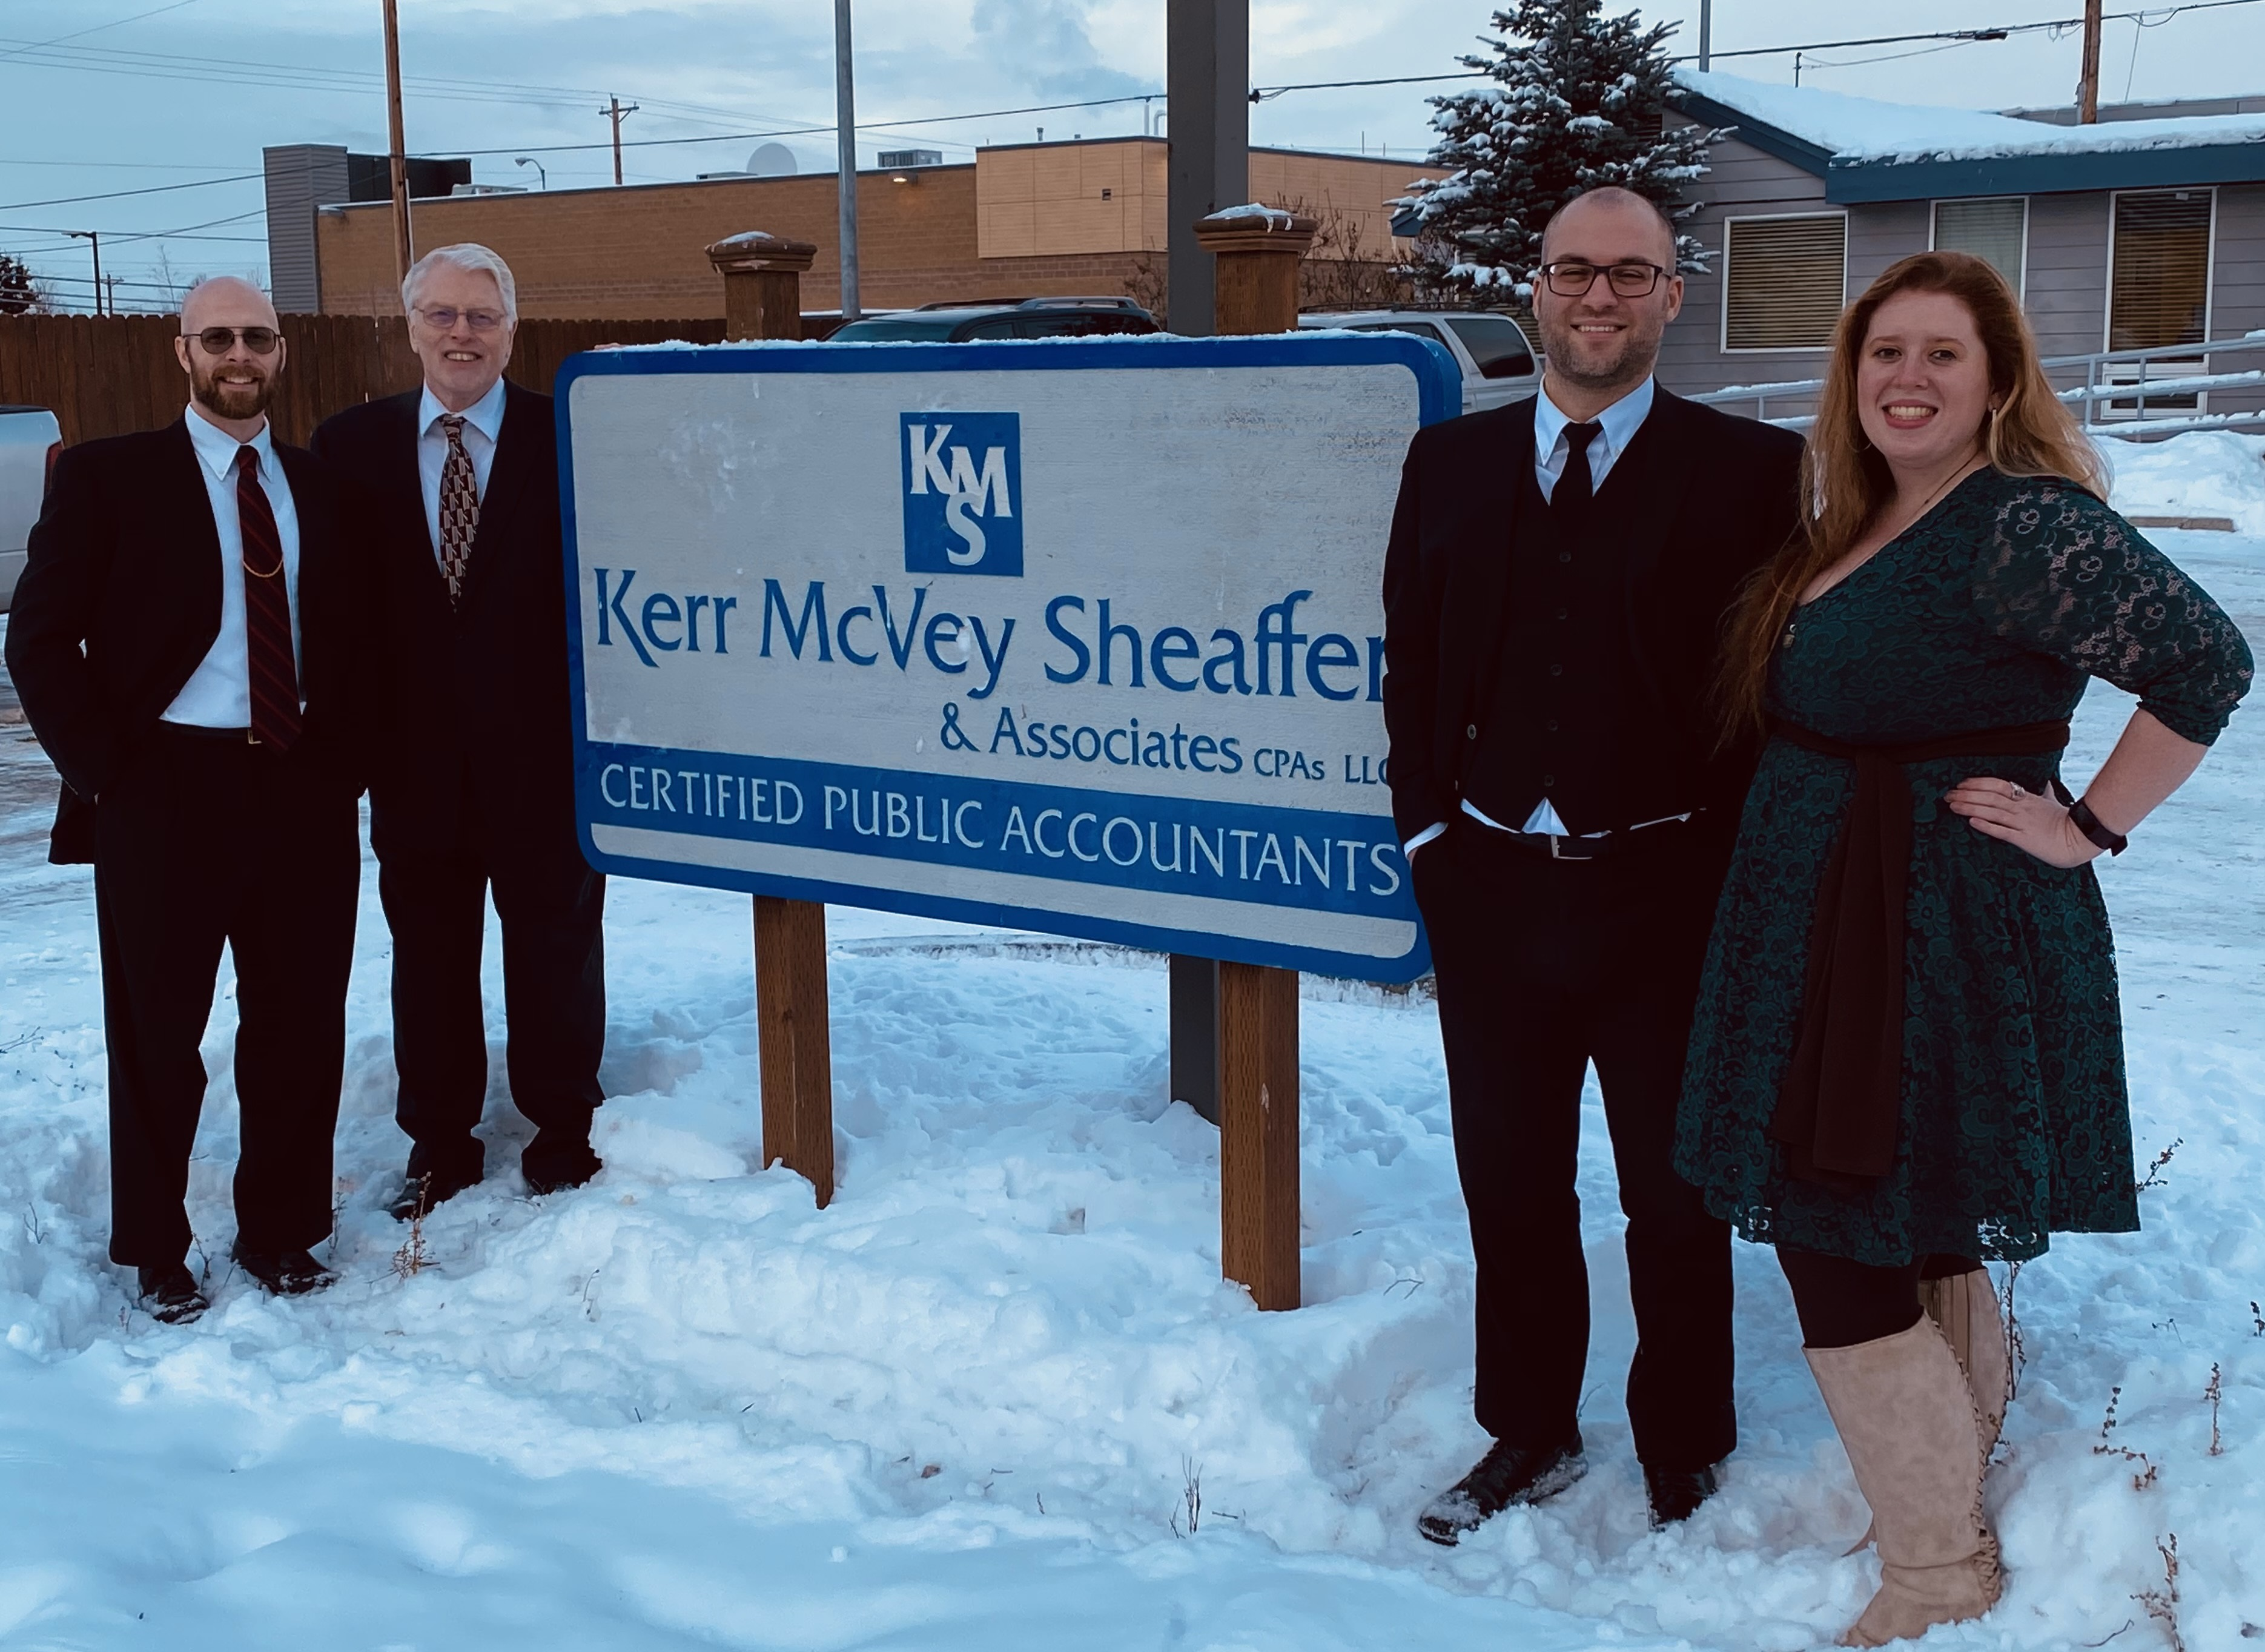 Kerr McVey Sheaffer & Associates Matthew Sheaffer Stephen Sheaffer Jason Stralka Kylie Kroeker